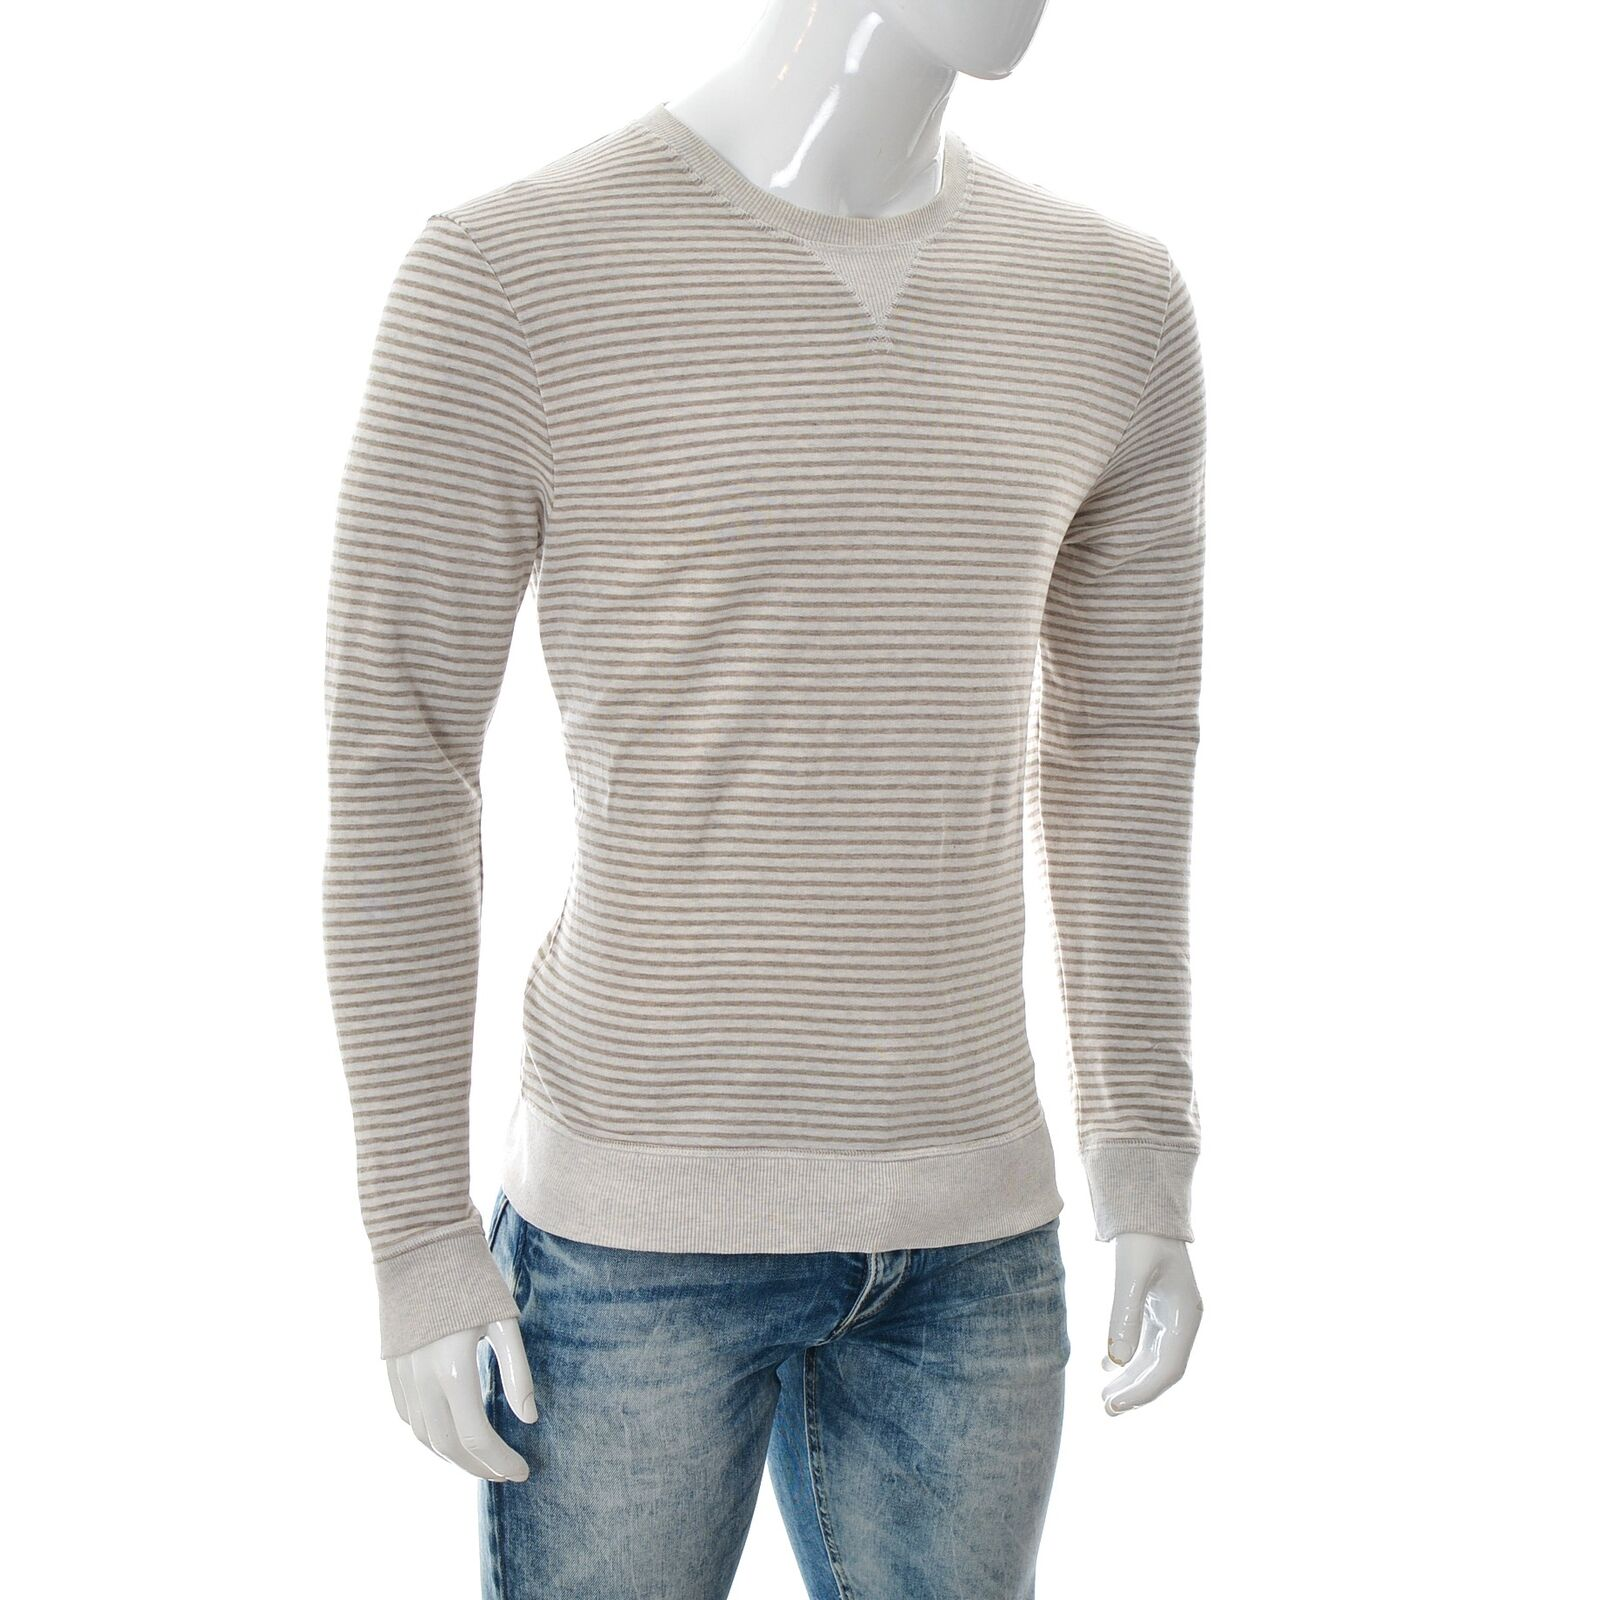 COS Mens Mustard Jacquard Knitted Sweater Jumper Crew Pullover Polo Top S To XL